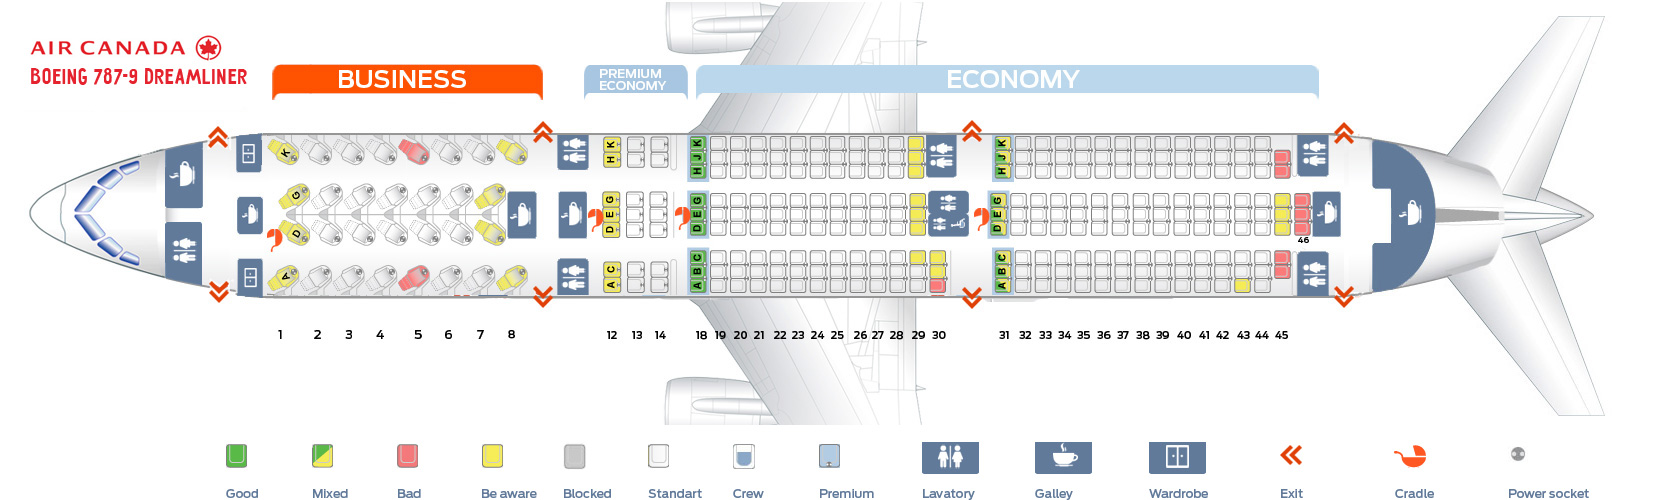 Air Canada Seat map Boeing 787-9 Dreamliner